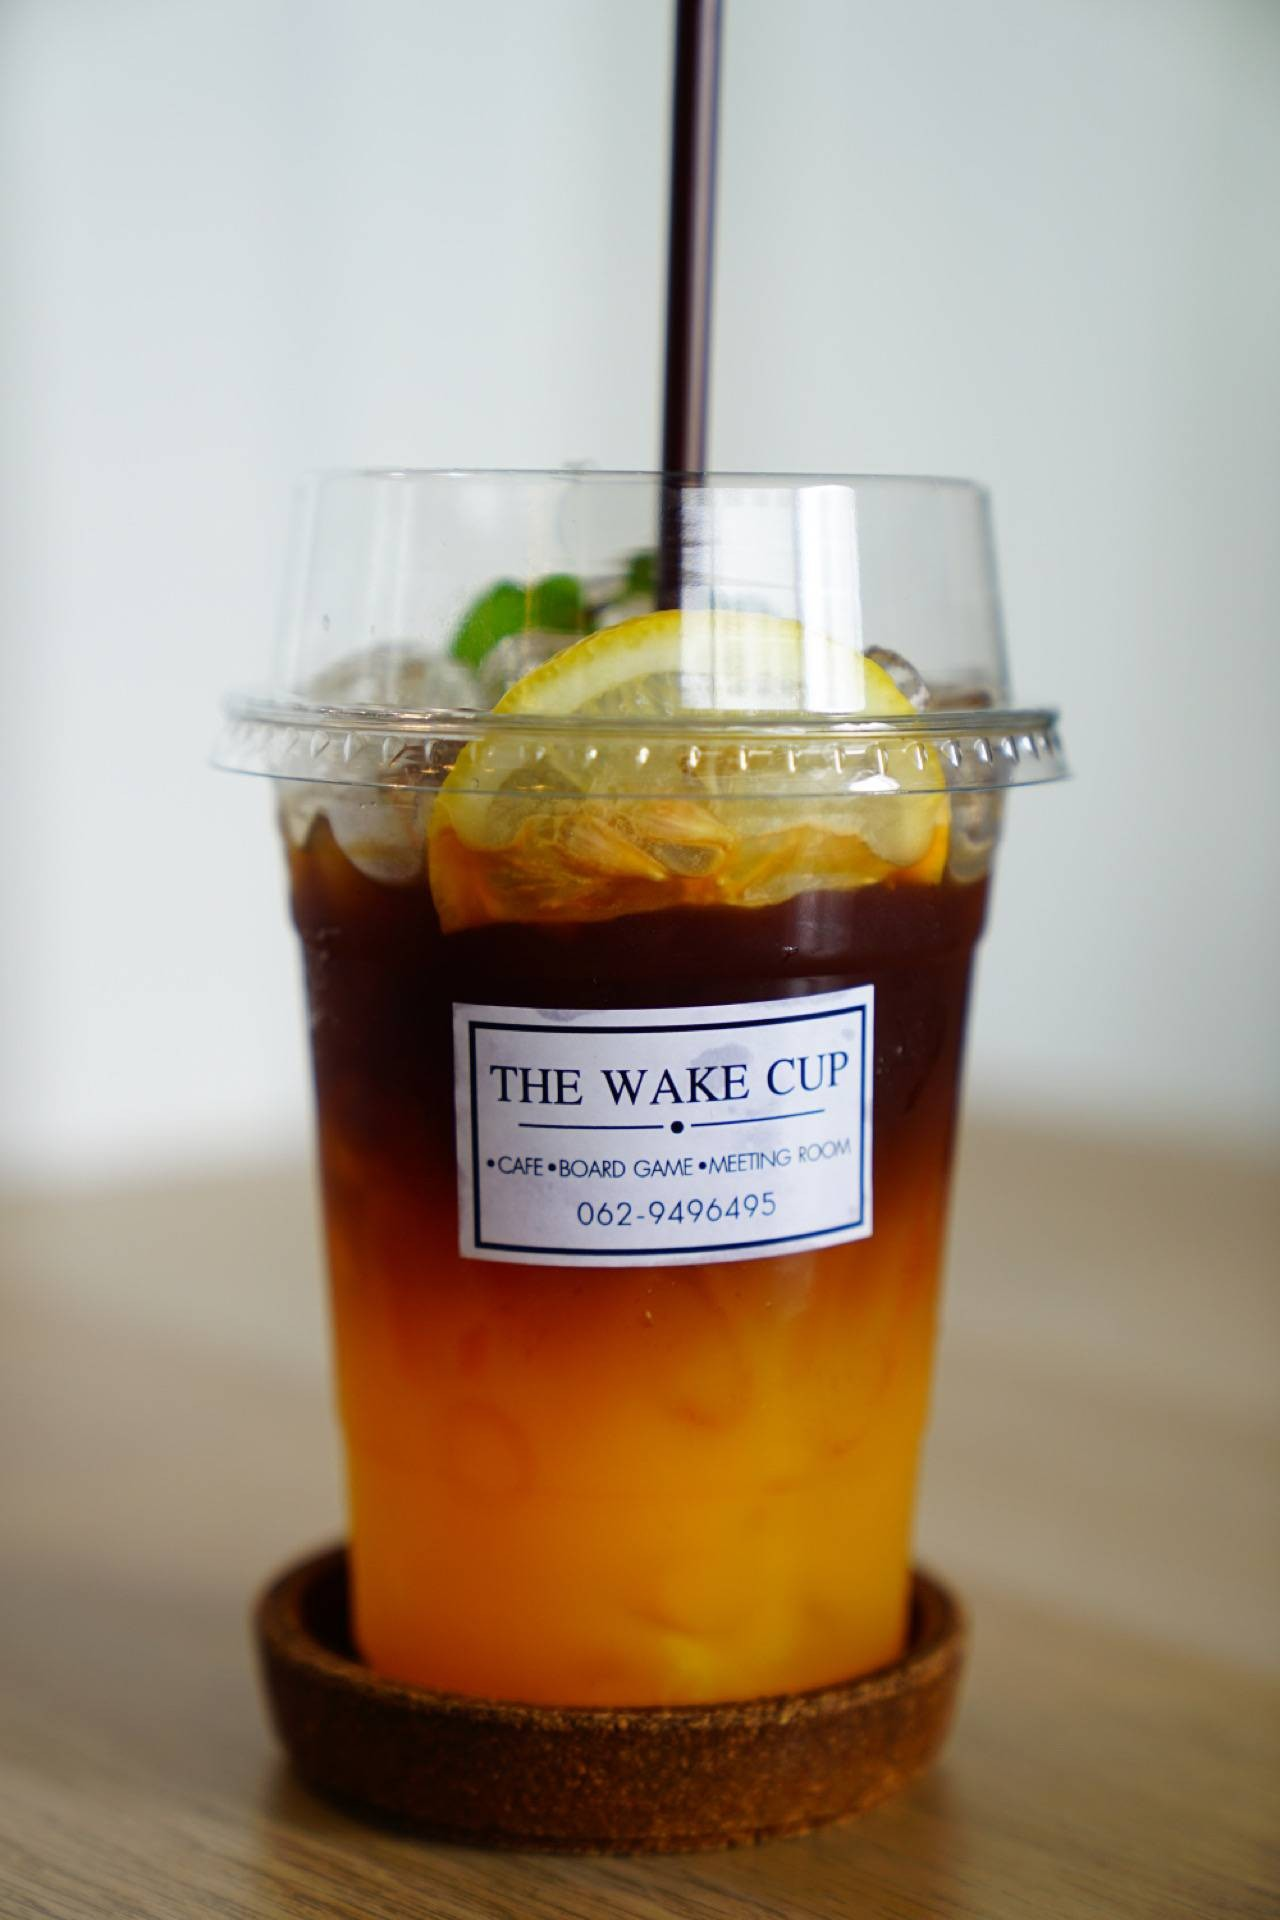 The Wake Cup